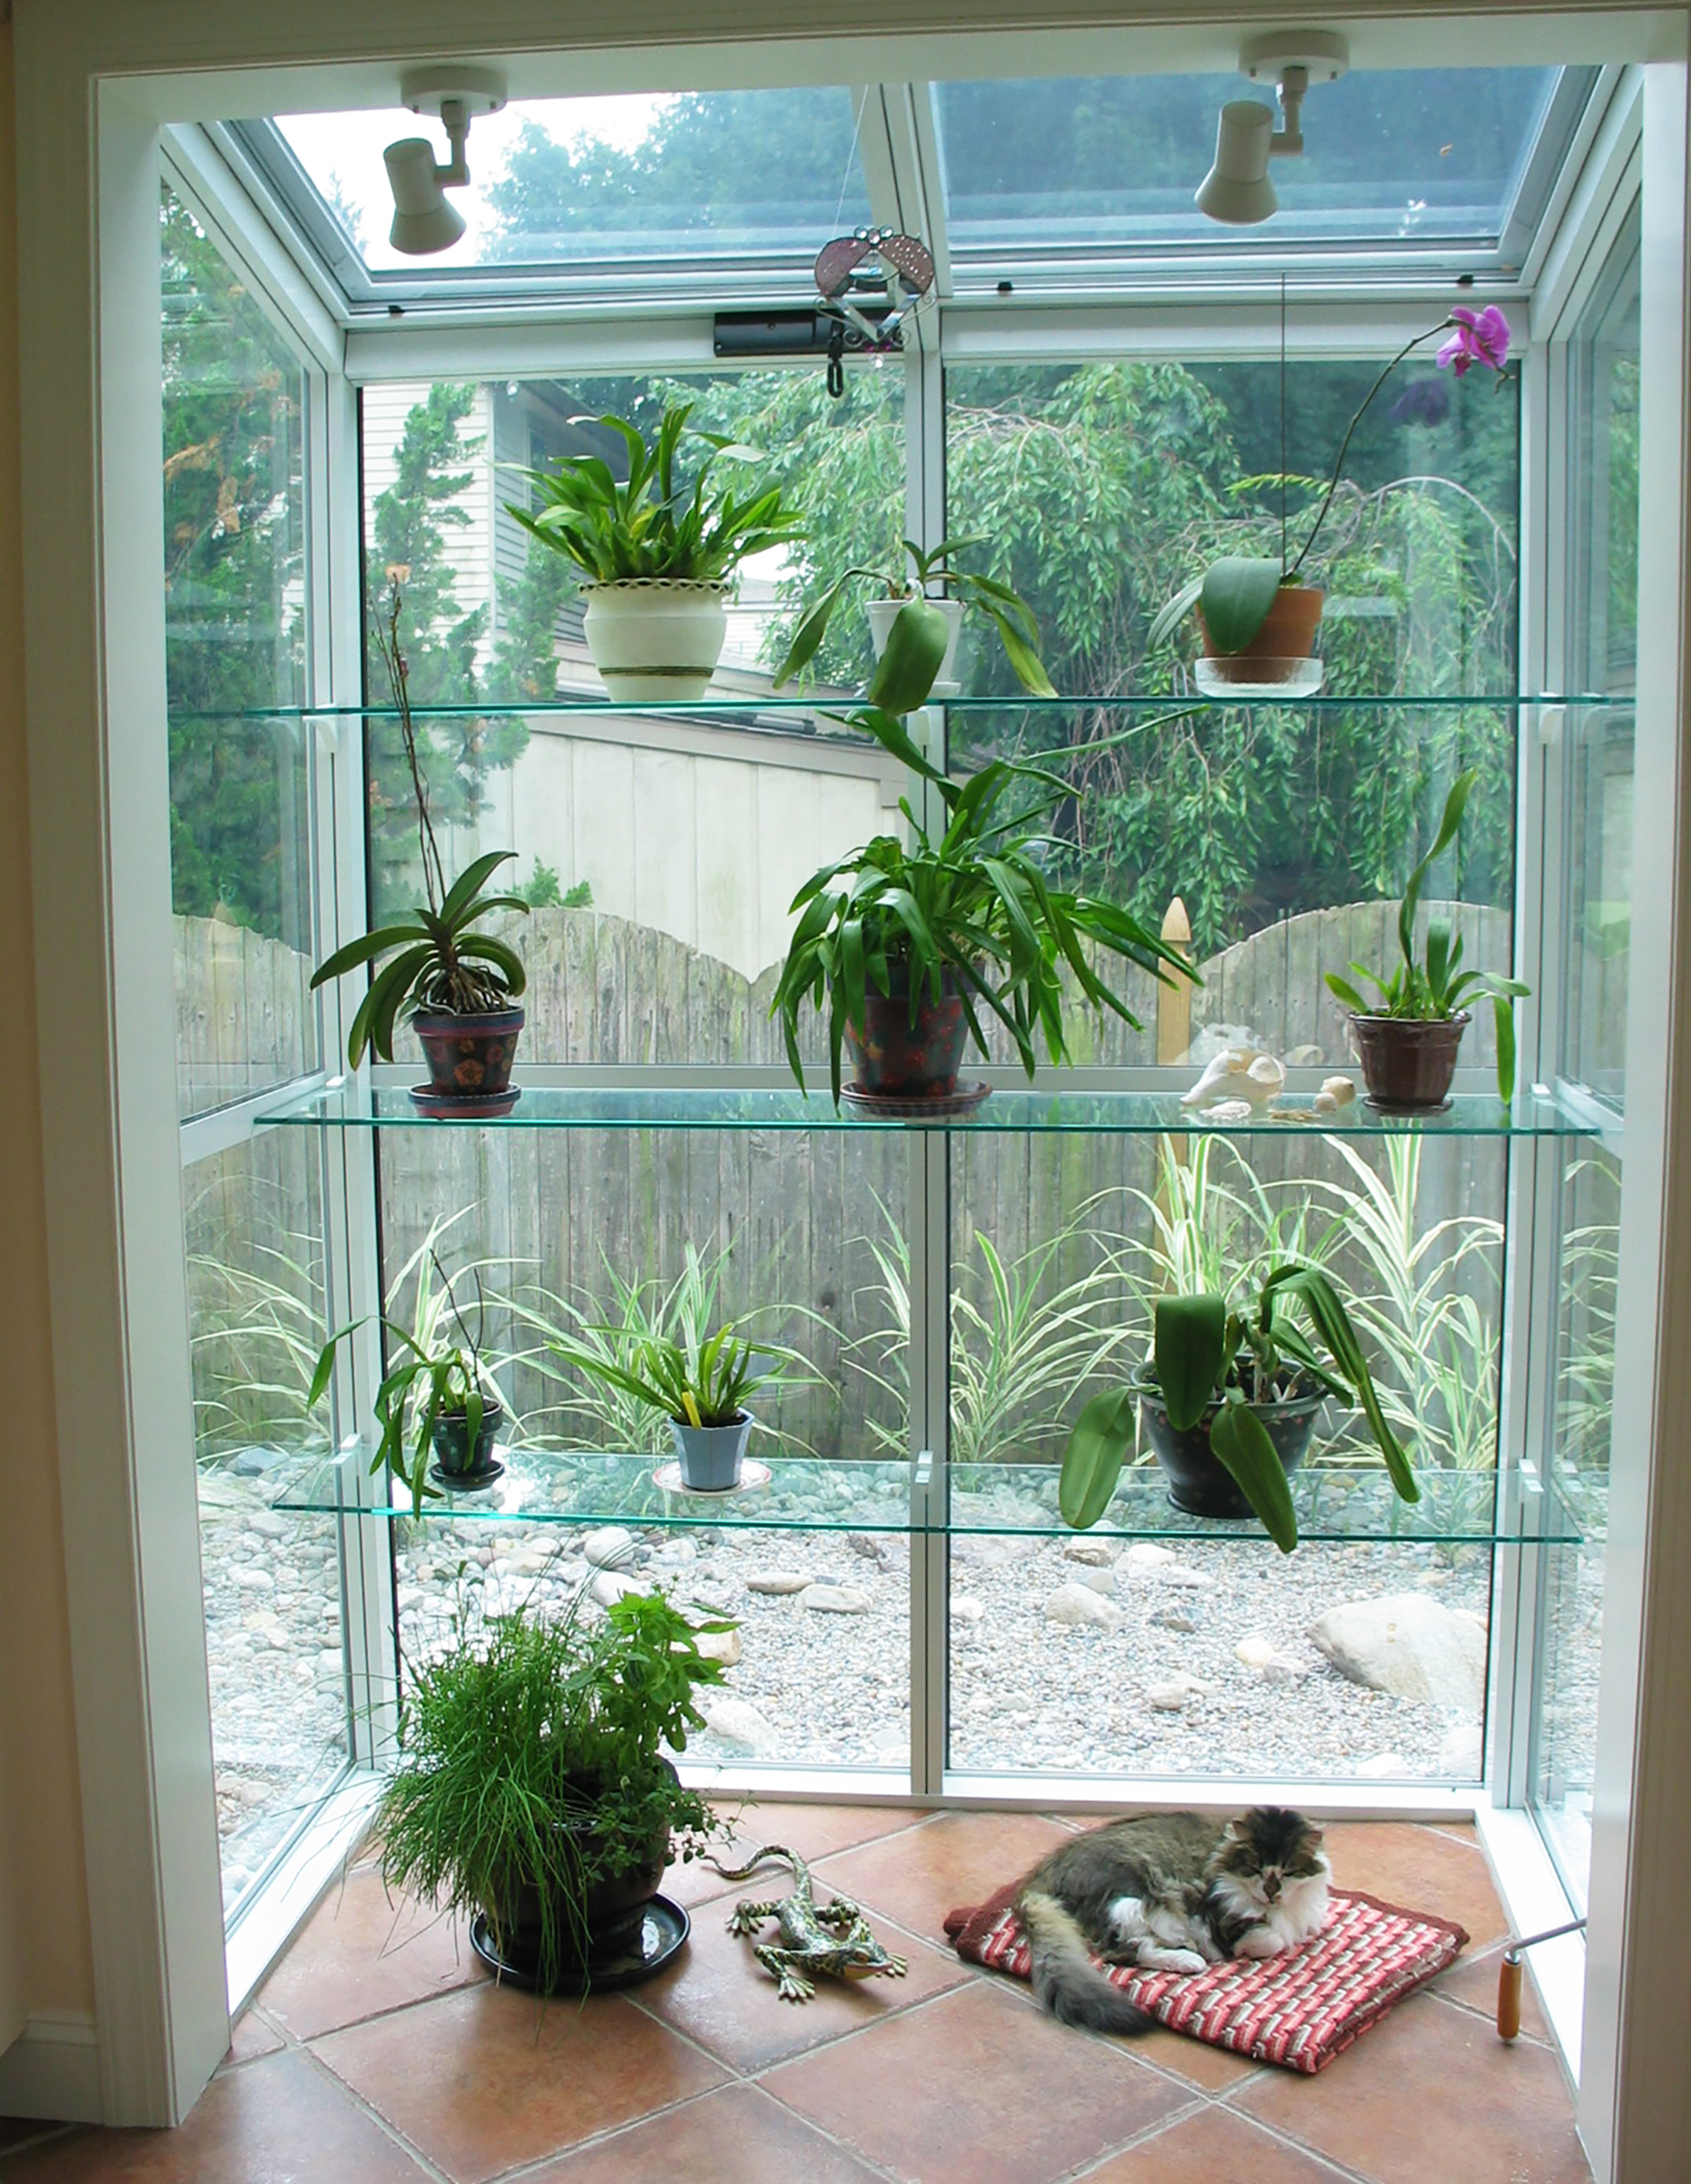 Glass window shelving with plants